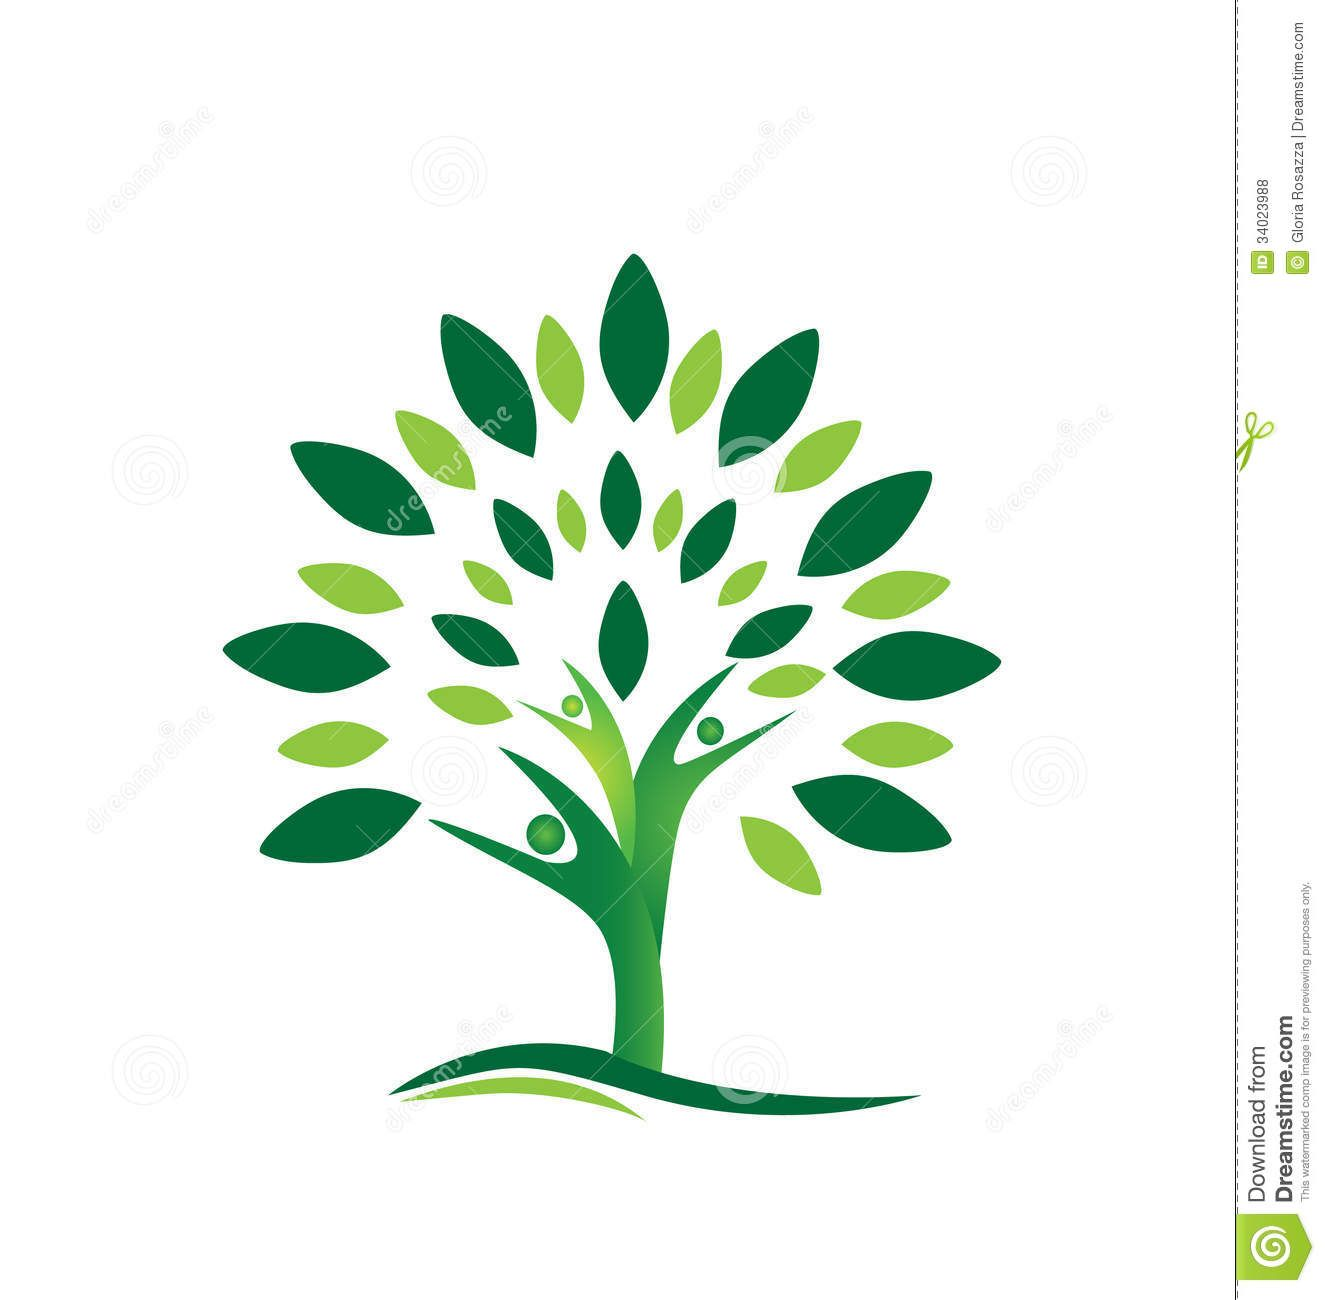 image result for free tree logo clipart logos pinterest tree